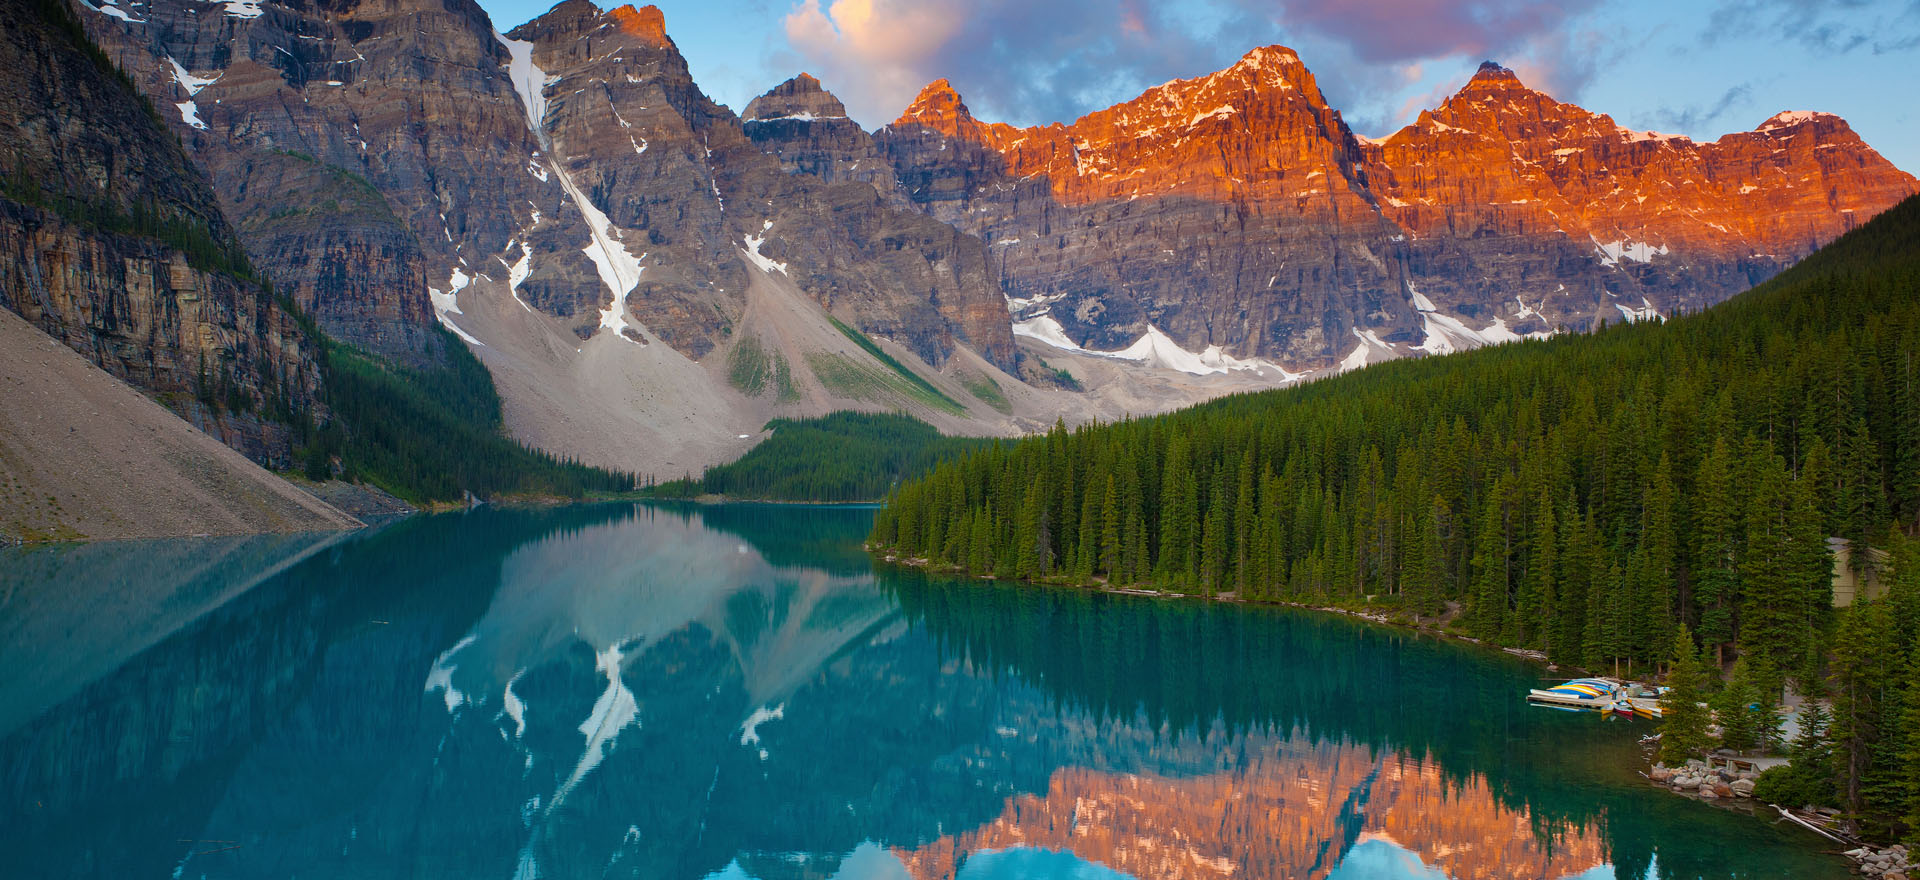 Sunrise over the Rocky Mountains at Moraine Lake